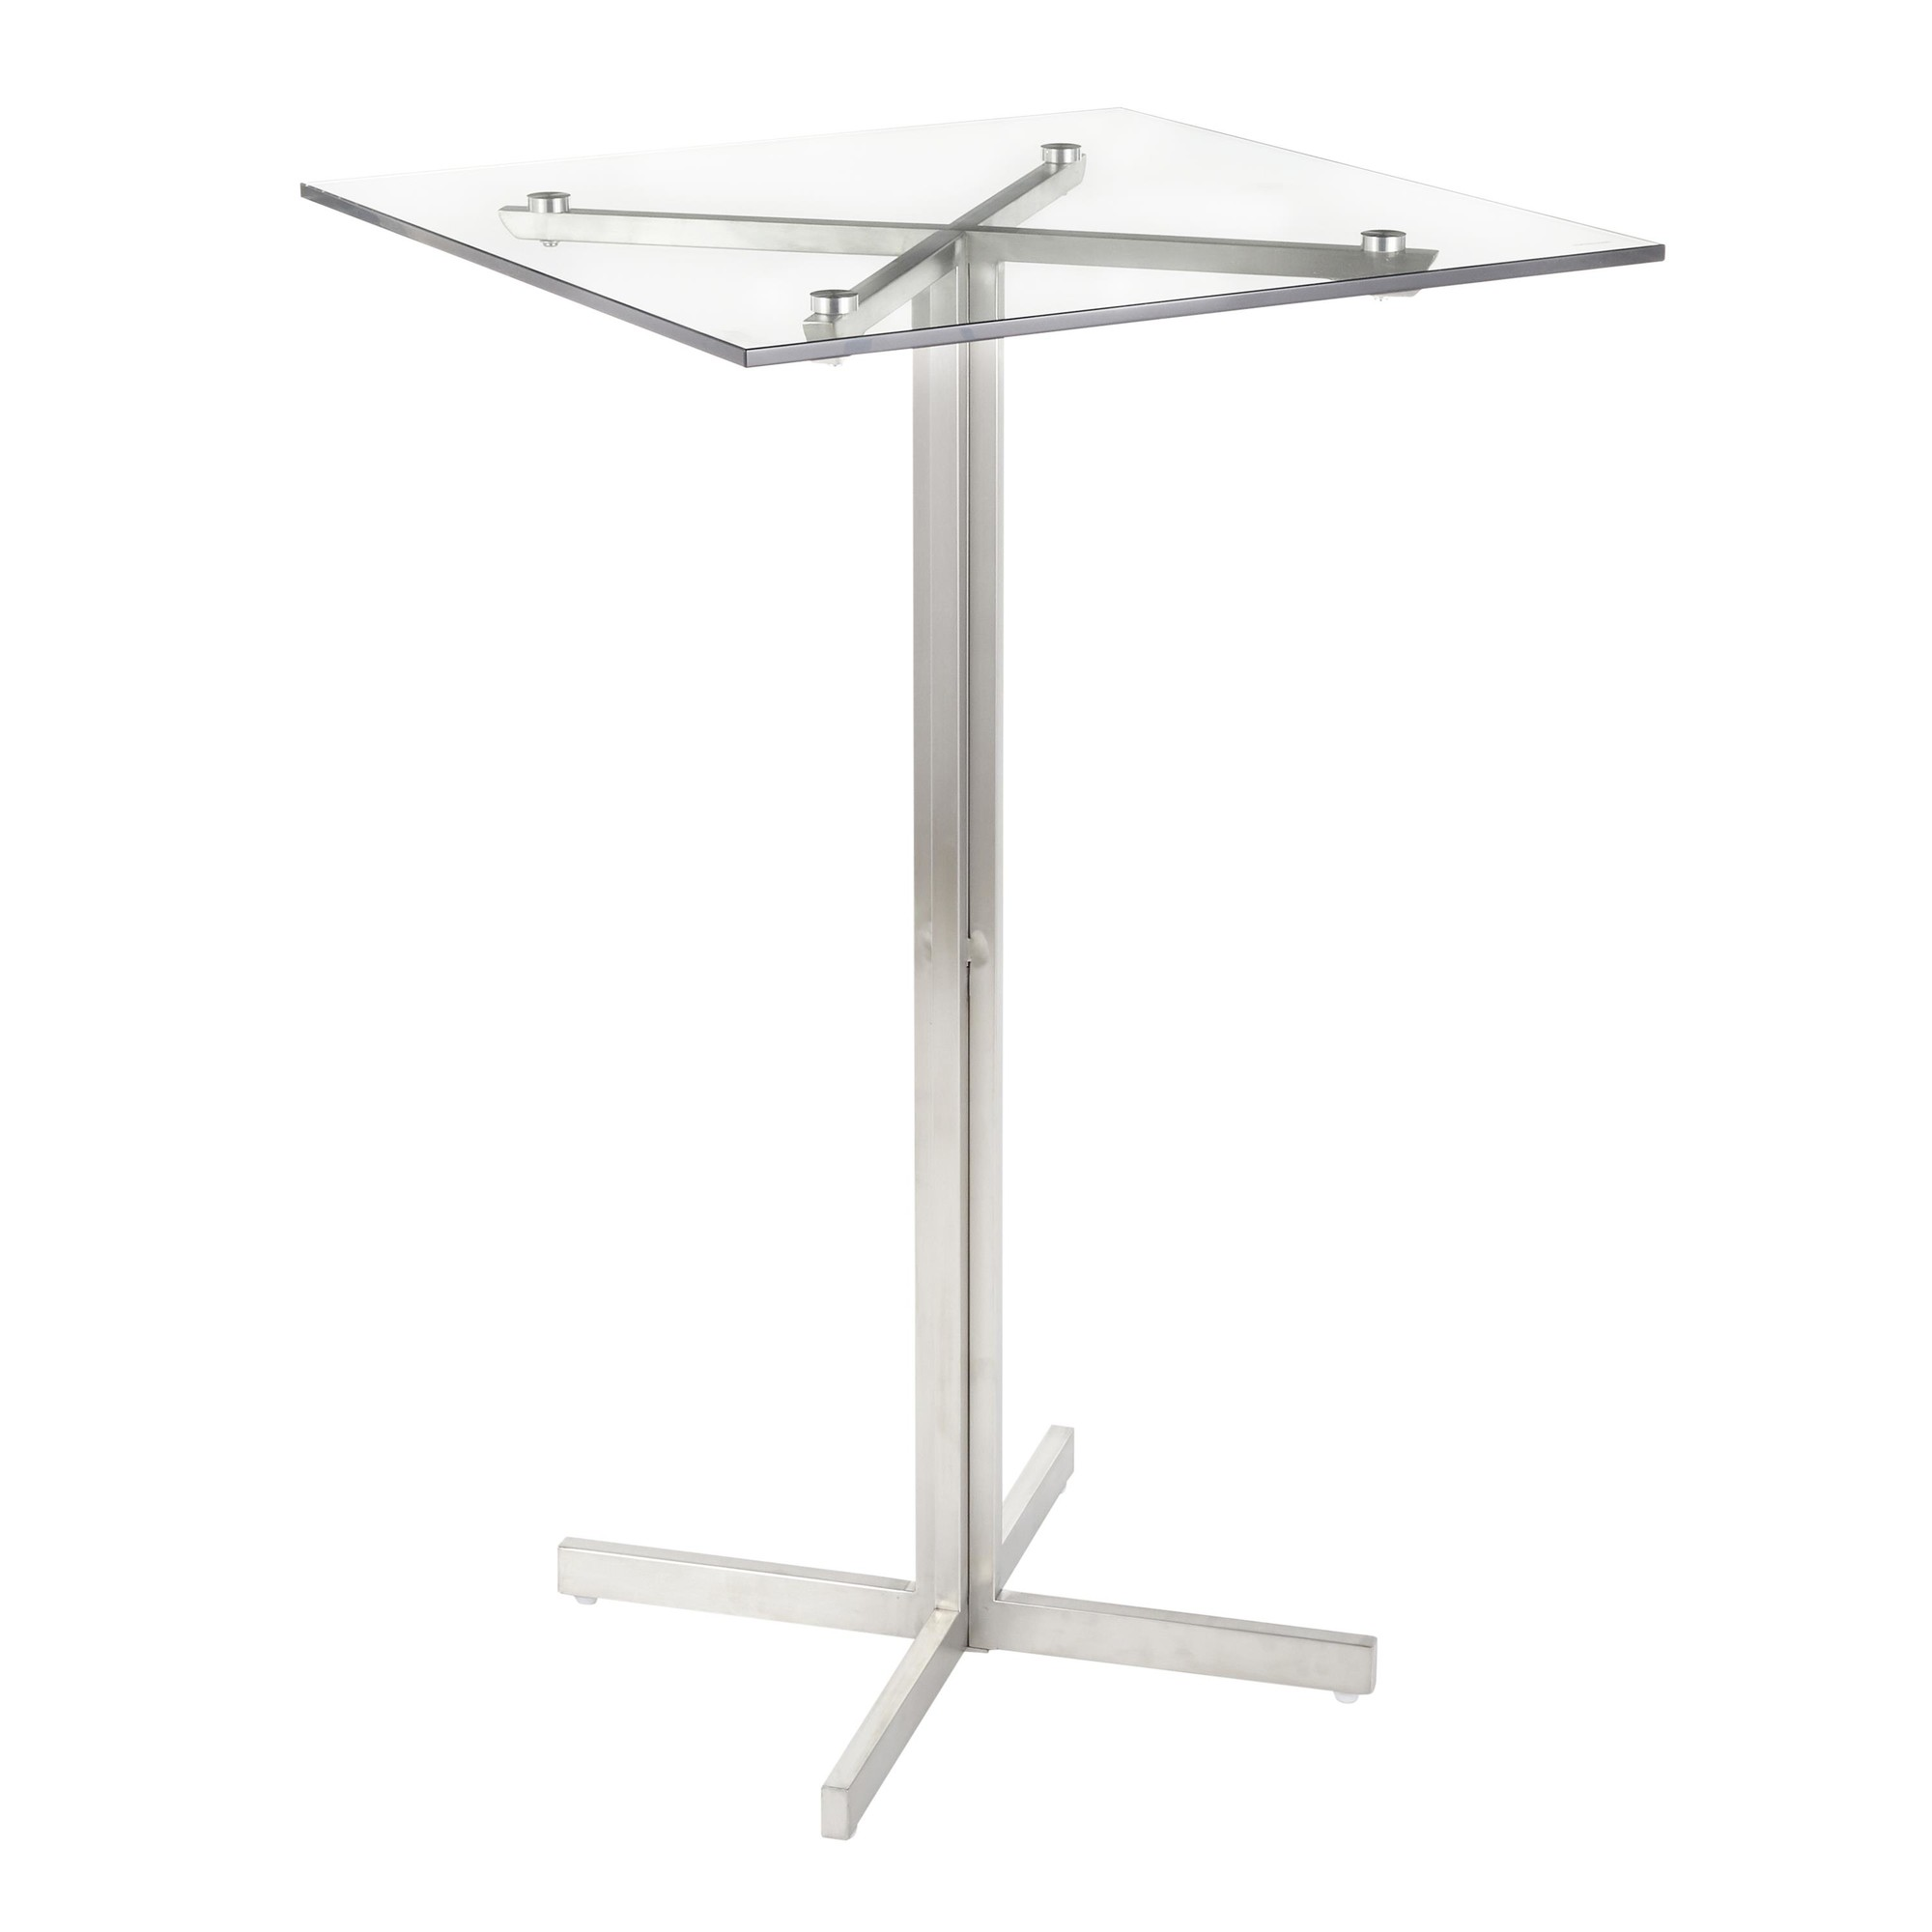 Fuji Square Bar Table Lumisource Stylish Decor At Affordable Prices